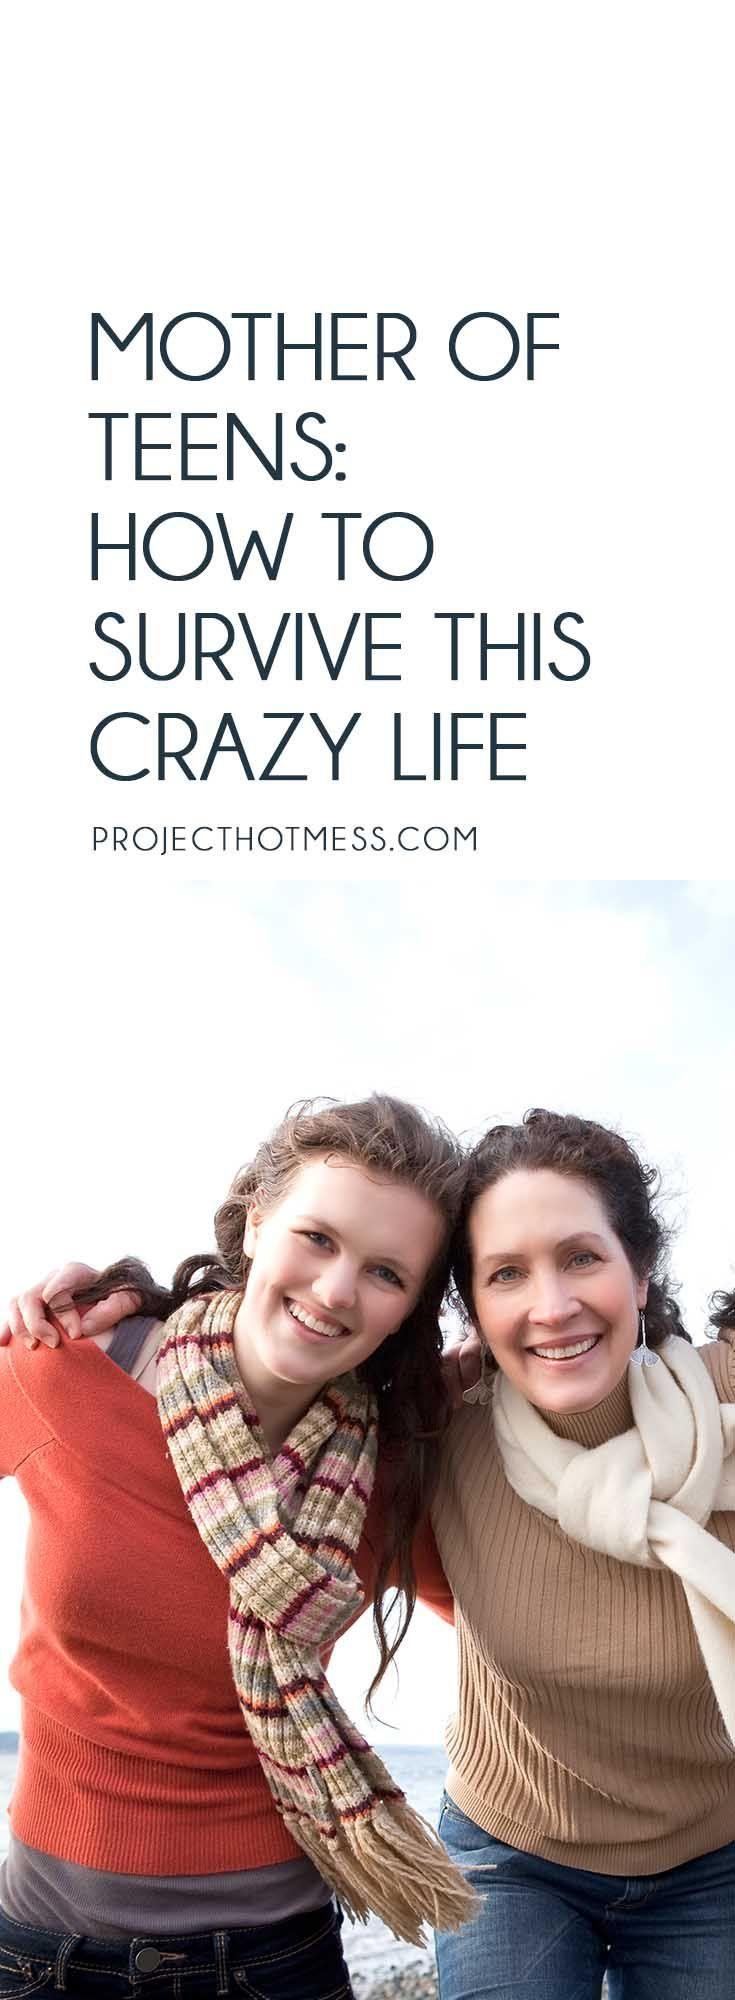 Teenagers are a whole new game as a parent, but there is a way you can survive the crazy life of being a mother of teens, without going completely bonkers.    Parenting | Parenting Advice | Mom Life | Parenting Goals | Parenting Ideas | Parenting Tips | Parenting Types | Parenting Hacks | Positive Parenting | Parenthood | Motherhood | Surviving Motherhood | Teenagers | Teen Parenting | Parenting Teenagers via @project_hotmess